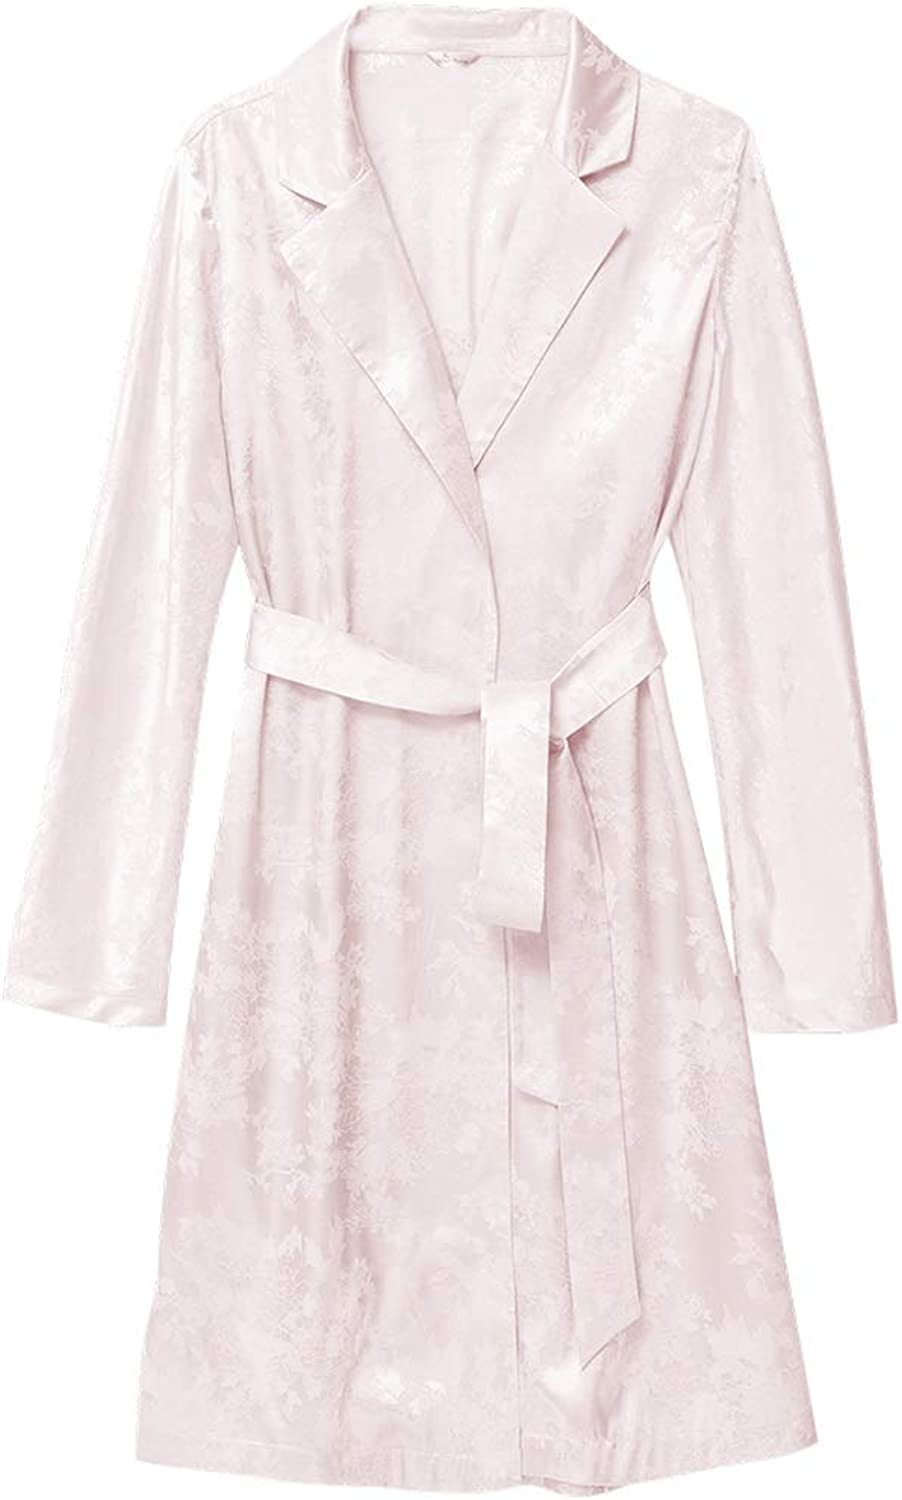 Home Service Female Sexy Retro Printed Nightgown LongSleeved Lace Bathrobe Home Service (color   Pink, Size   F)